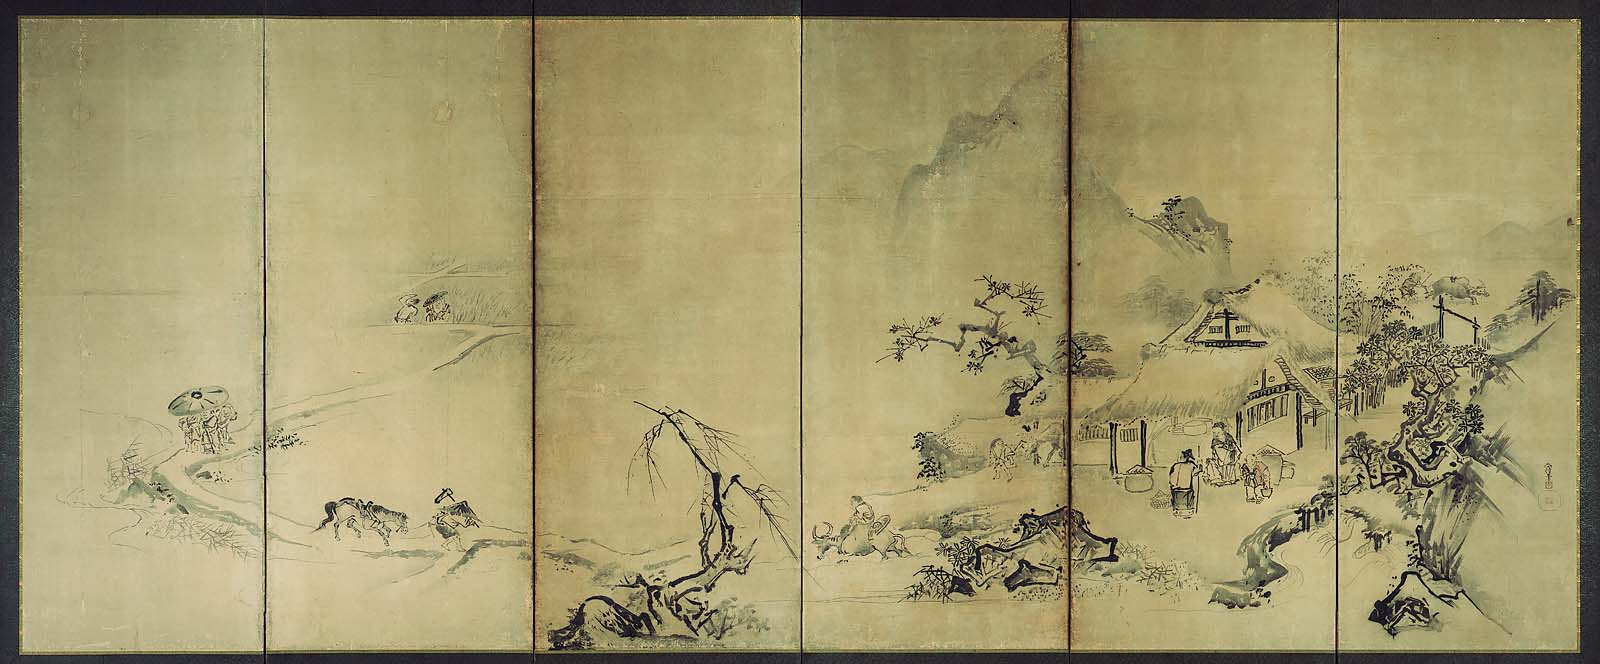 Rice and Silkworm Cultivation in the Four Seasons | Museum of Fine ...